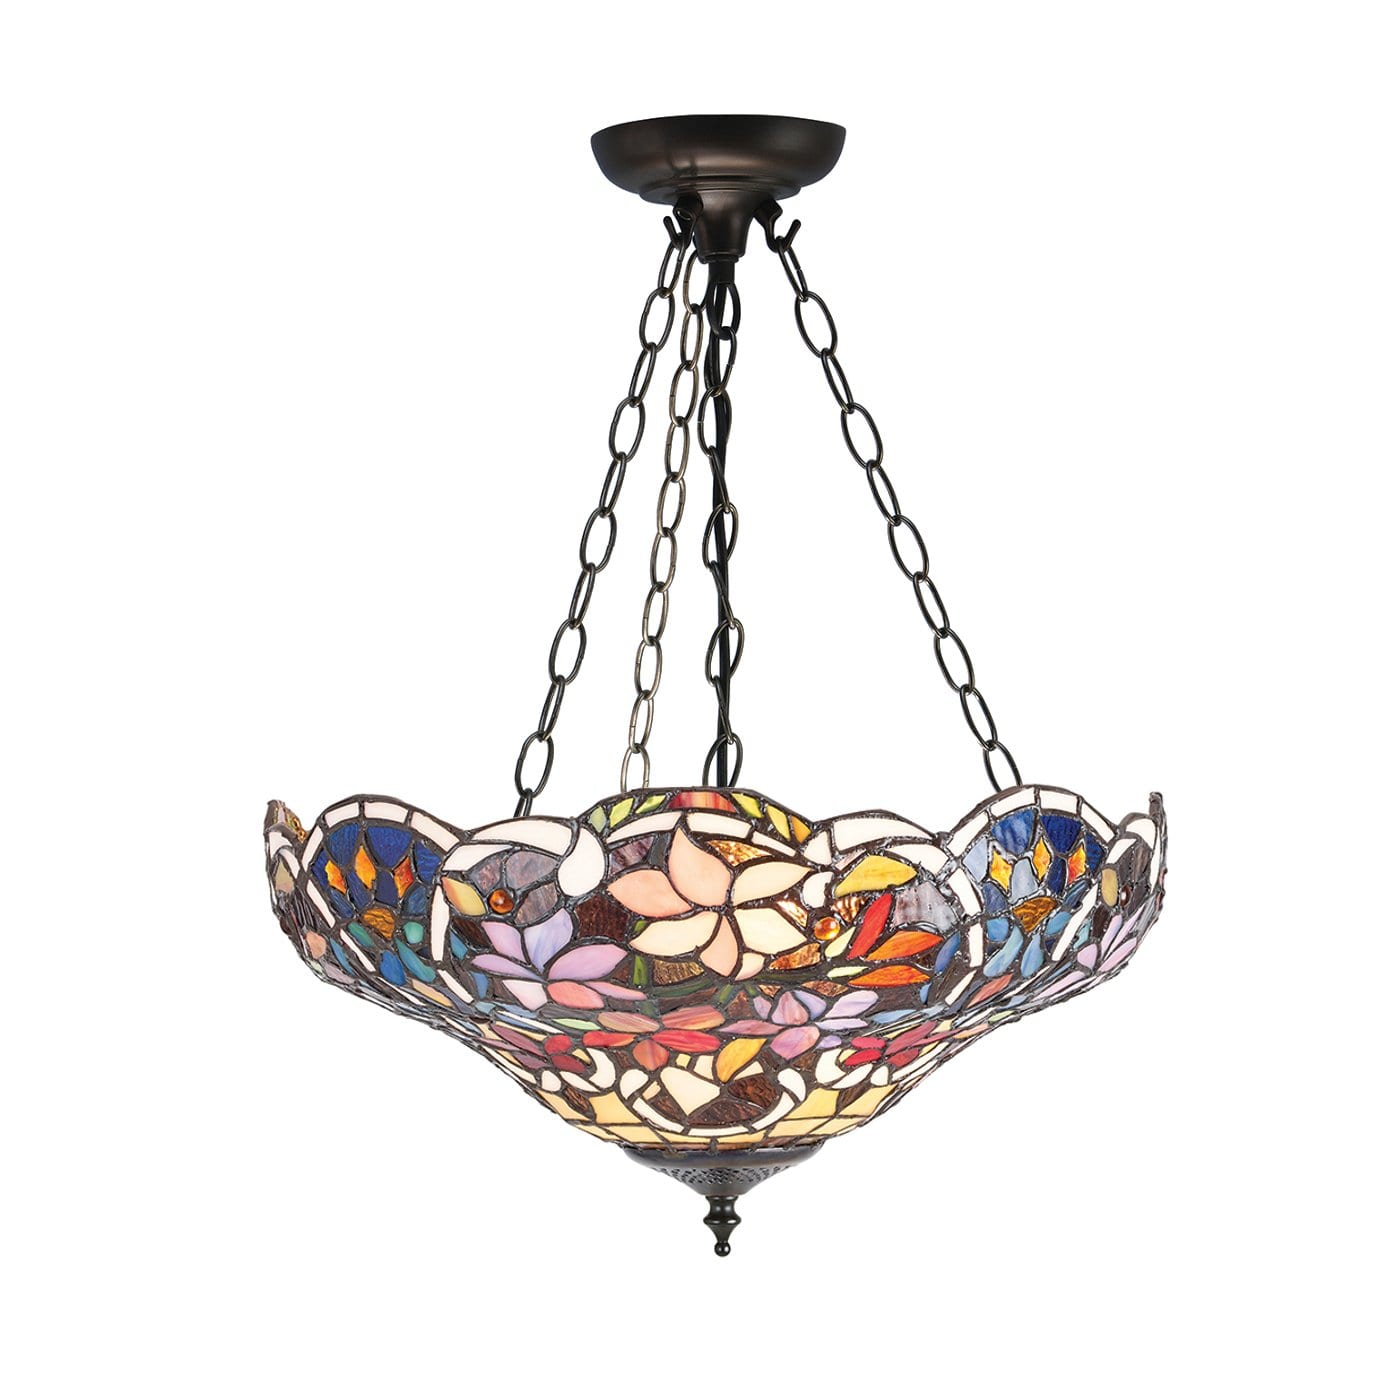 Sullivan Inverted Tiffany Ceiling Light by Interiors 1900